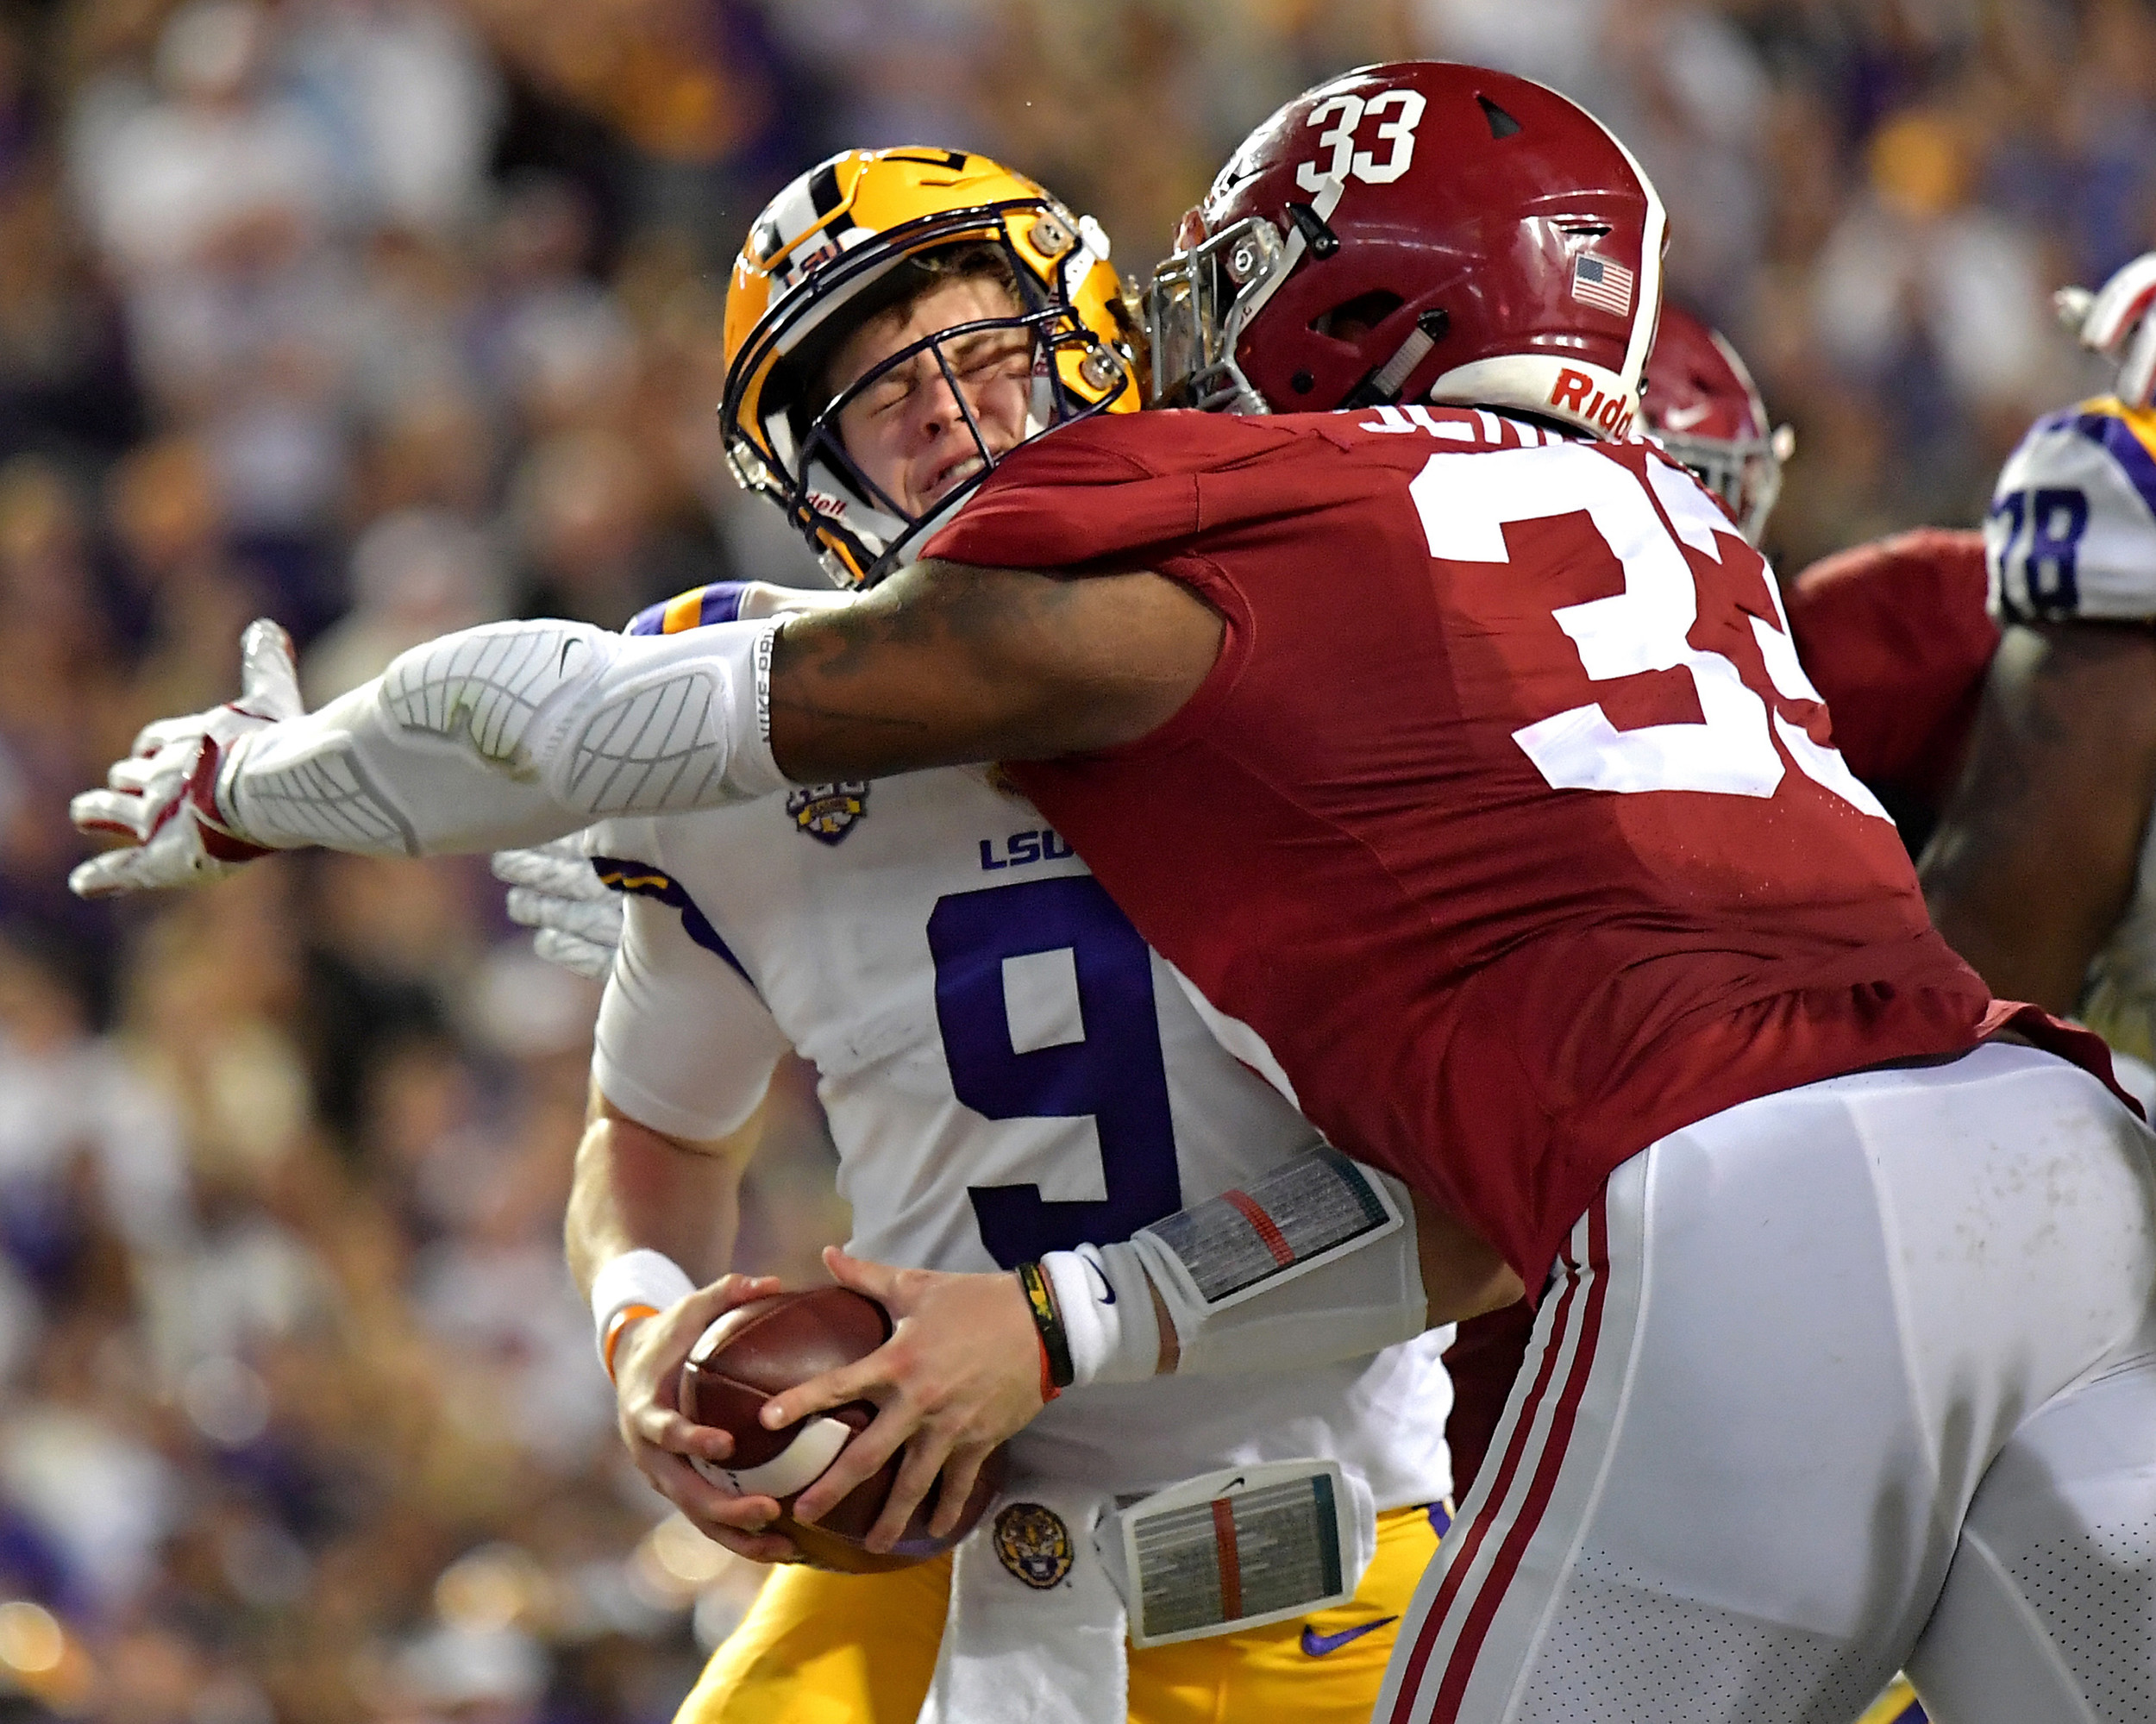 LSU Tigers quarterback Joe Burrow (9) is sacked by Alabama Crimson Tide linebacker Anfernee Jennings (33) in the first half of an NCAA football game Saturday, November 3, 2018, at Tiger Stadium in Baton Rouge, La. Alabama wins 29-0. (Photo by Lee Walls)